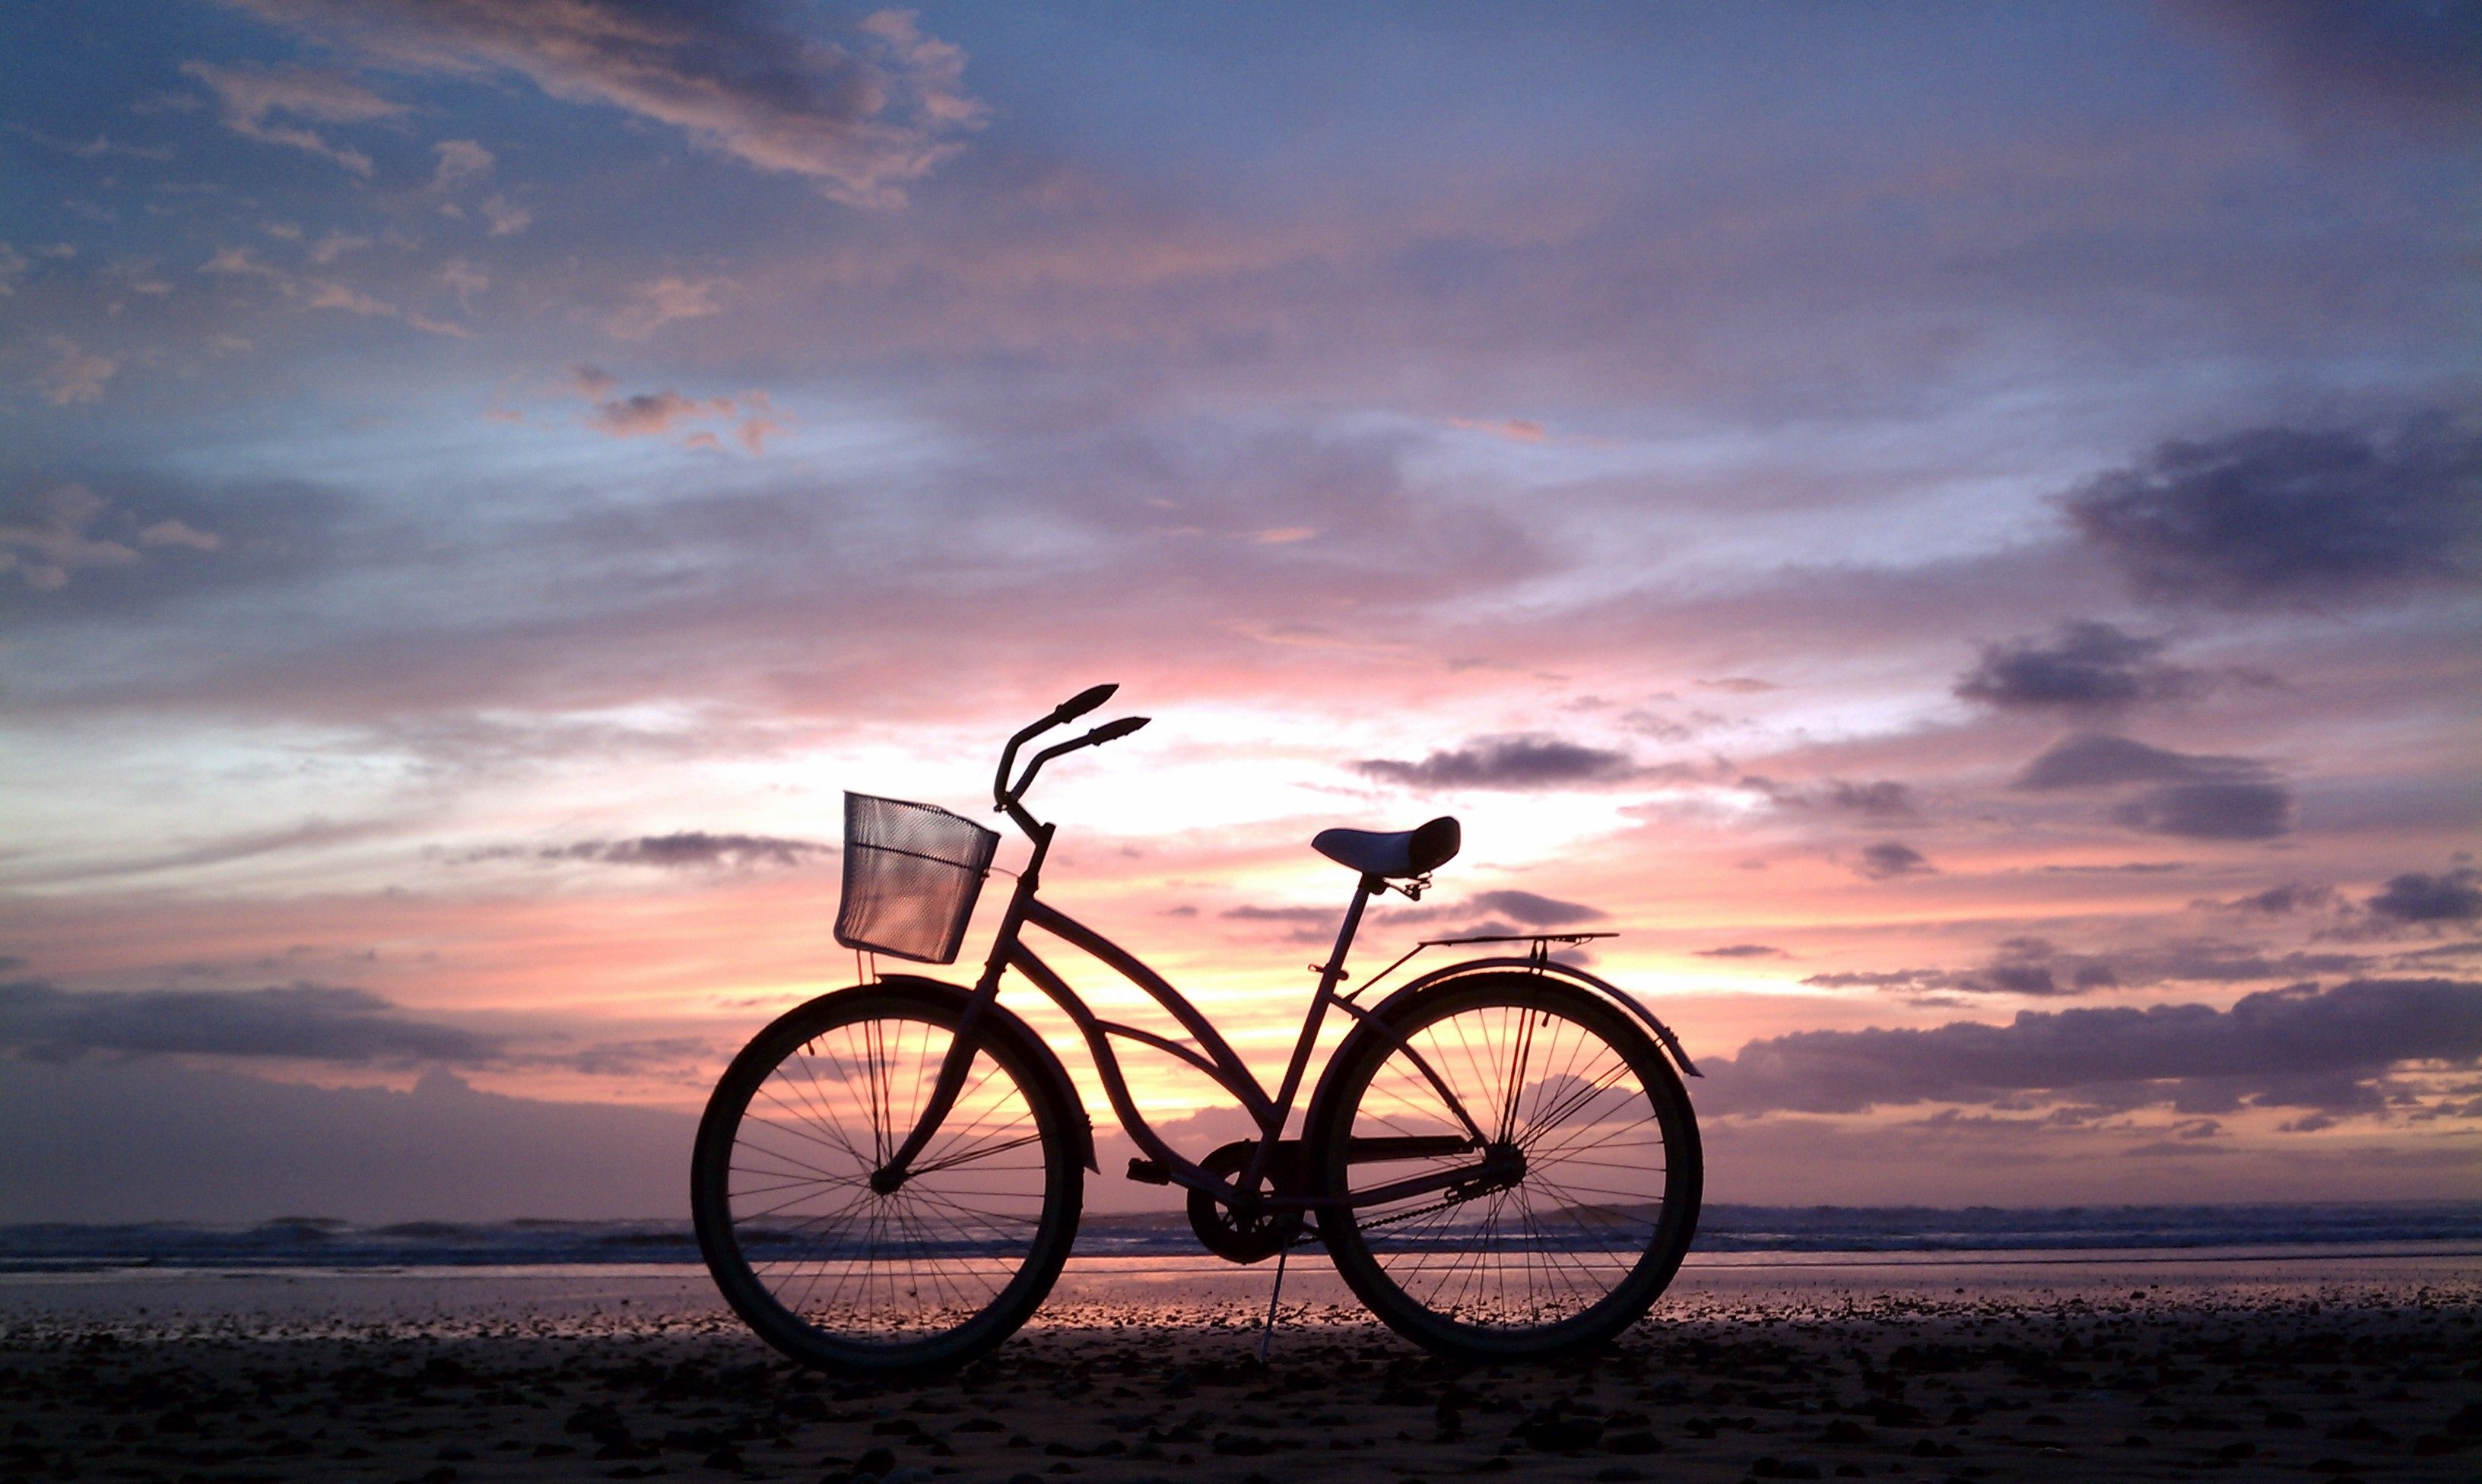 Beach, sunset, bike...what more could you ask for? | Designs we love ...